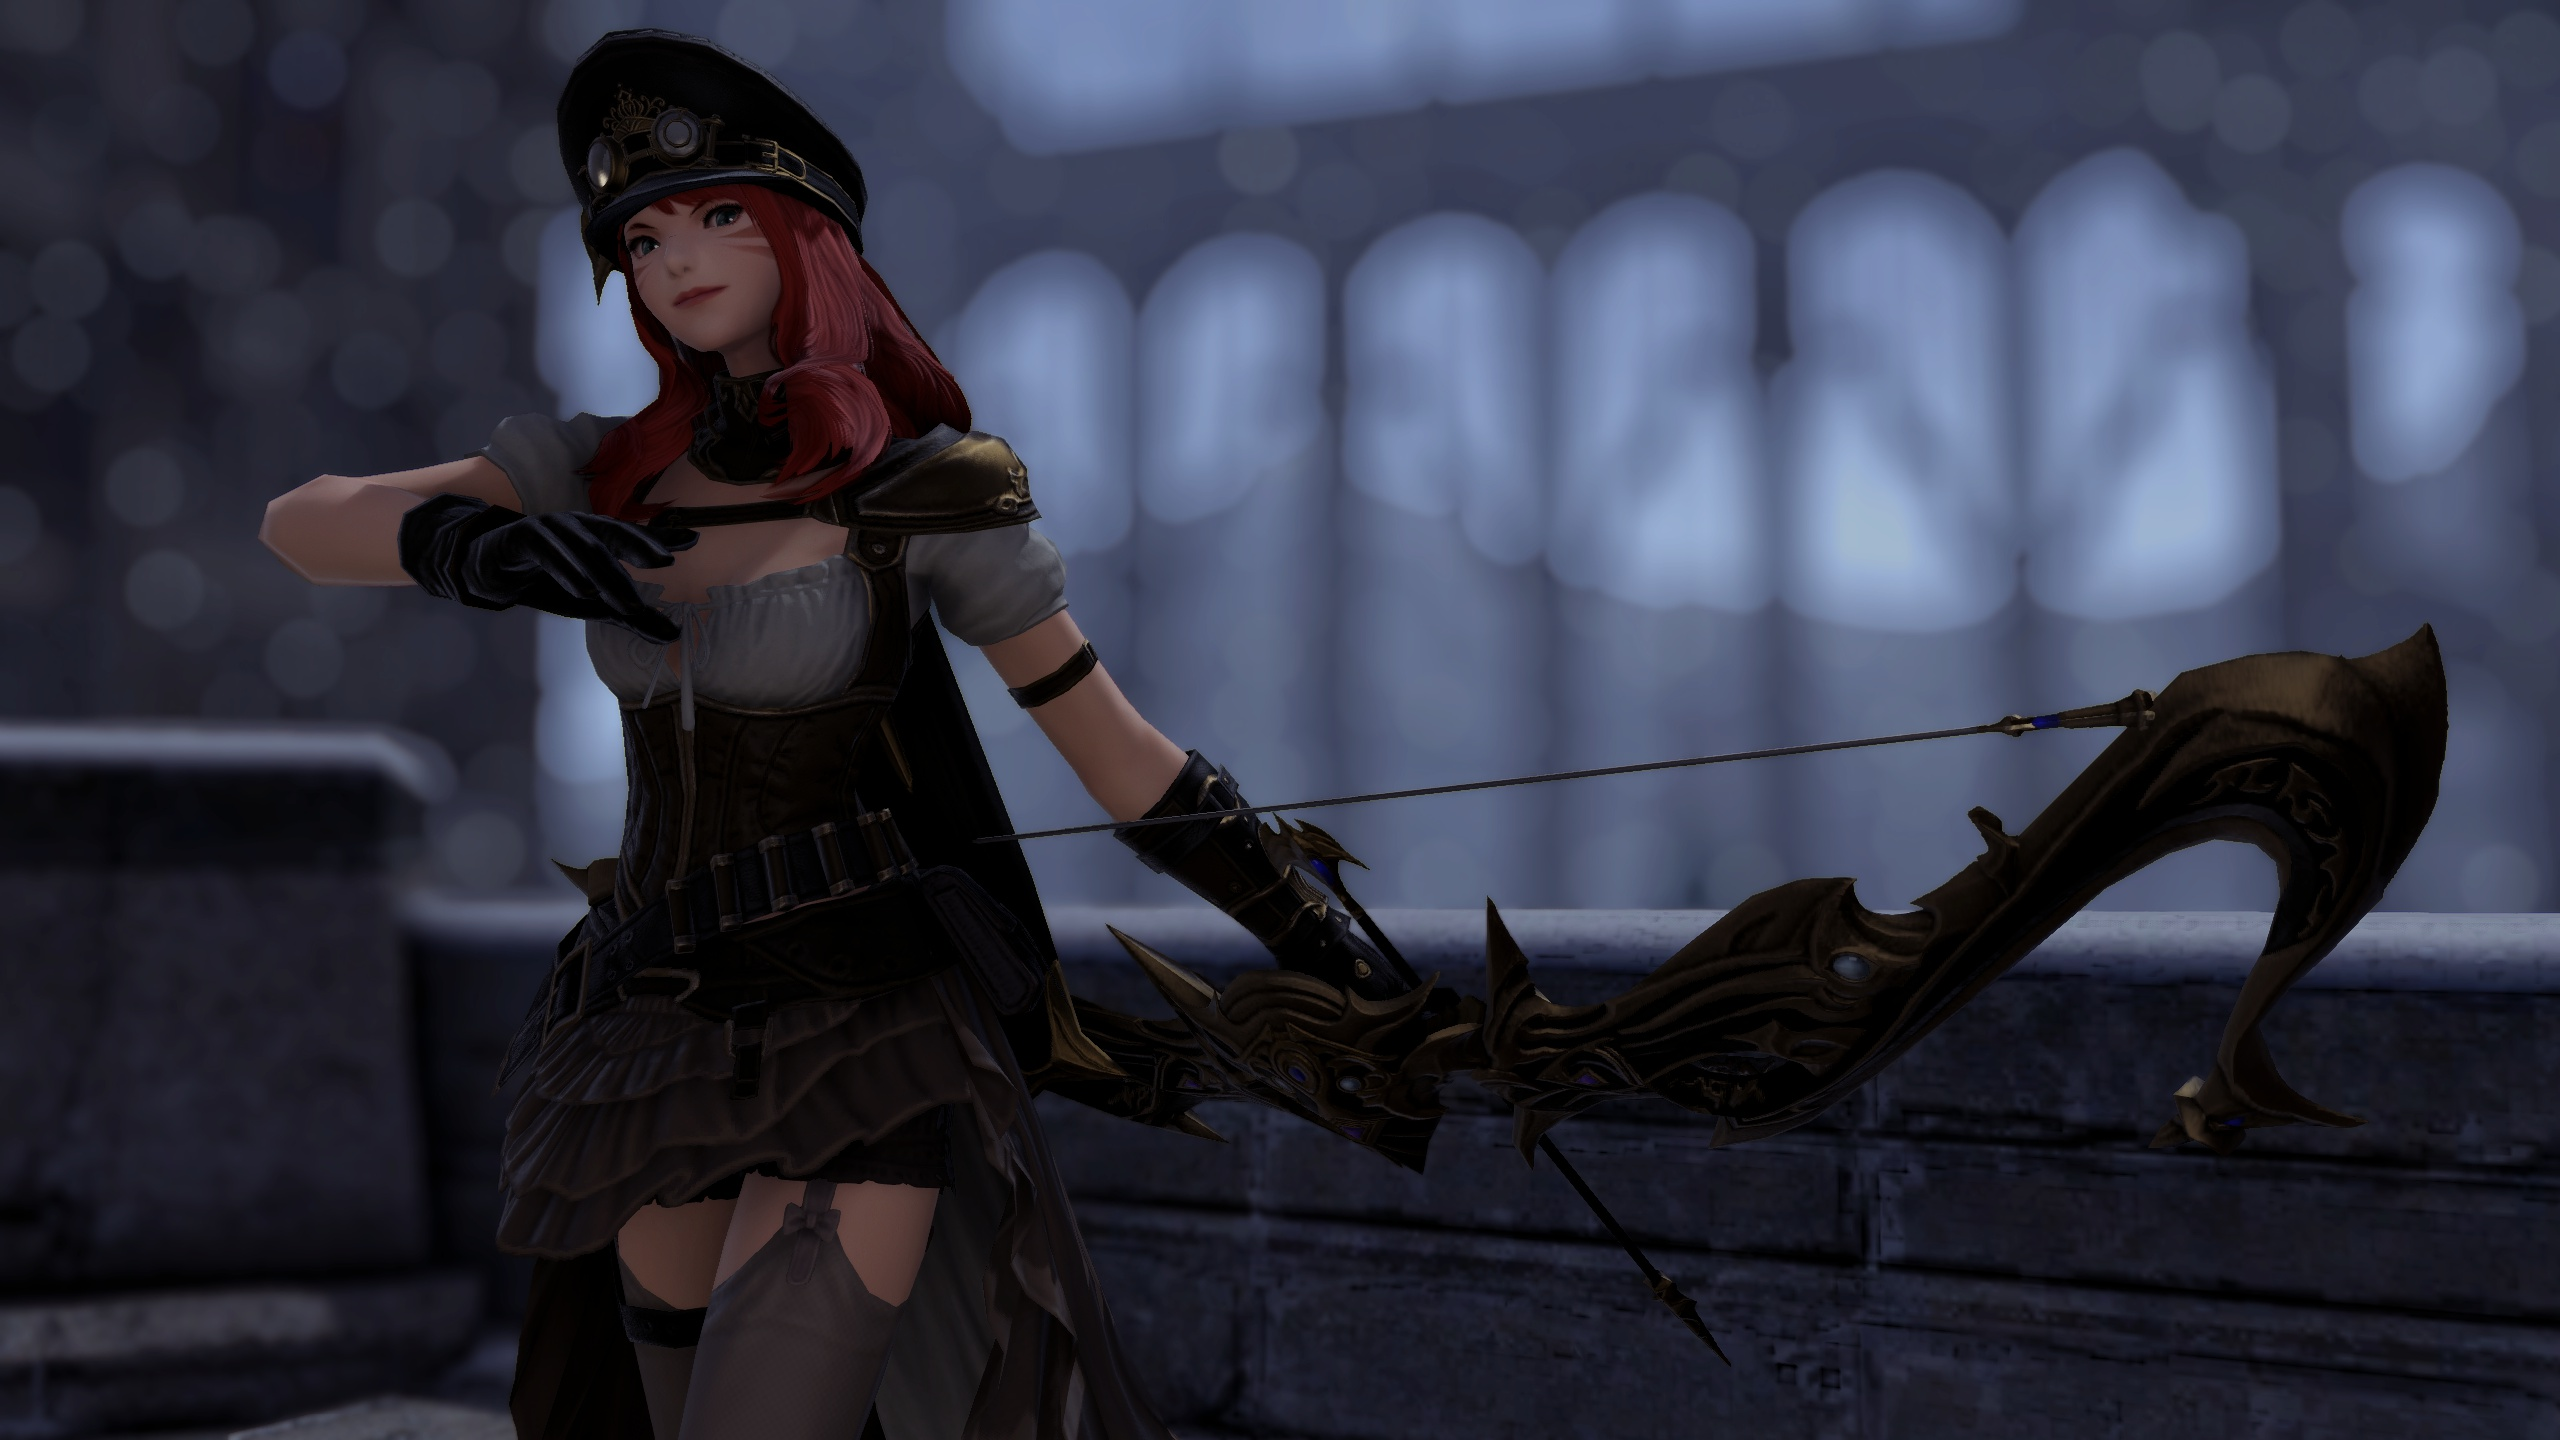 FINAL FANTASY XIV Online - Advanced Players Guide + Unlocking Features + Side Quest Tips - Unlocking even more optional instances - 74172C8